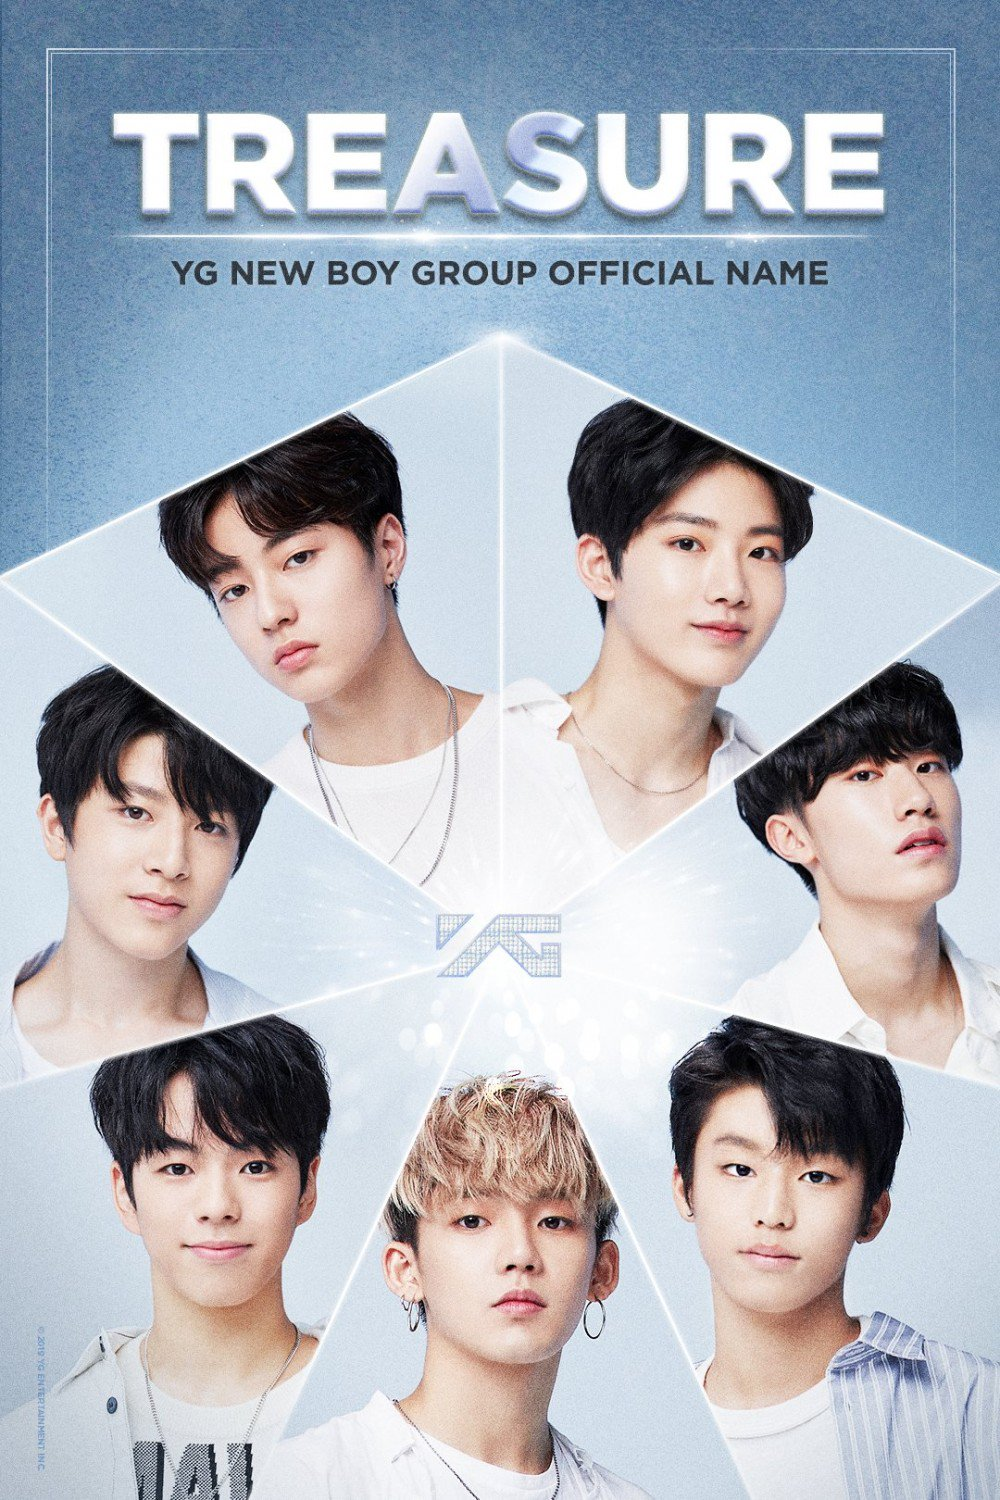 Name Of YG Entertainment's New Boy Group Is